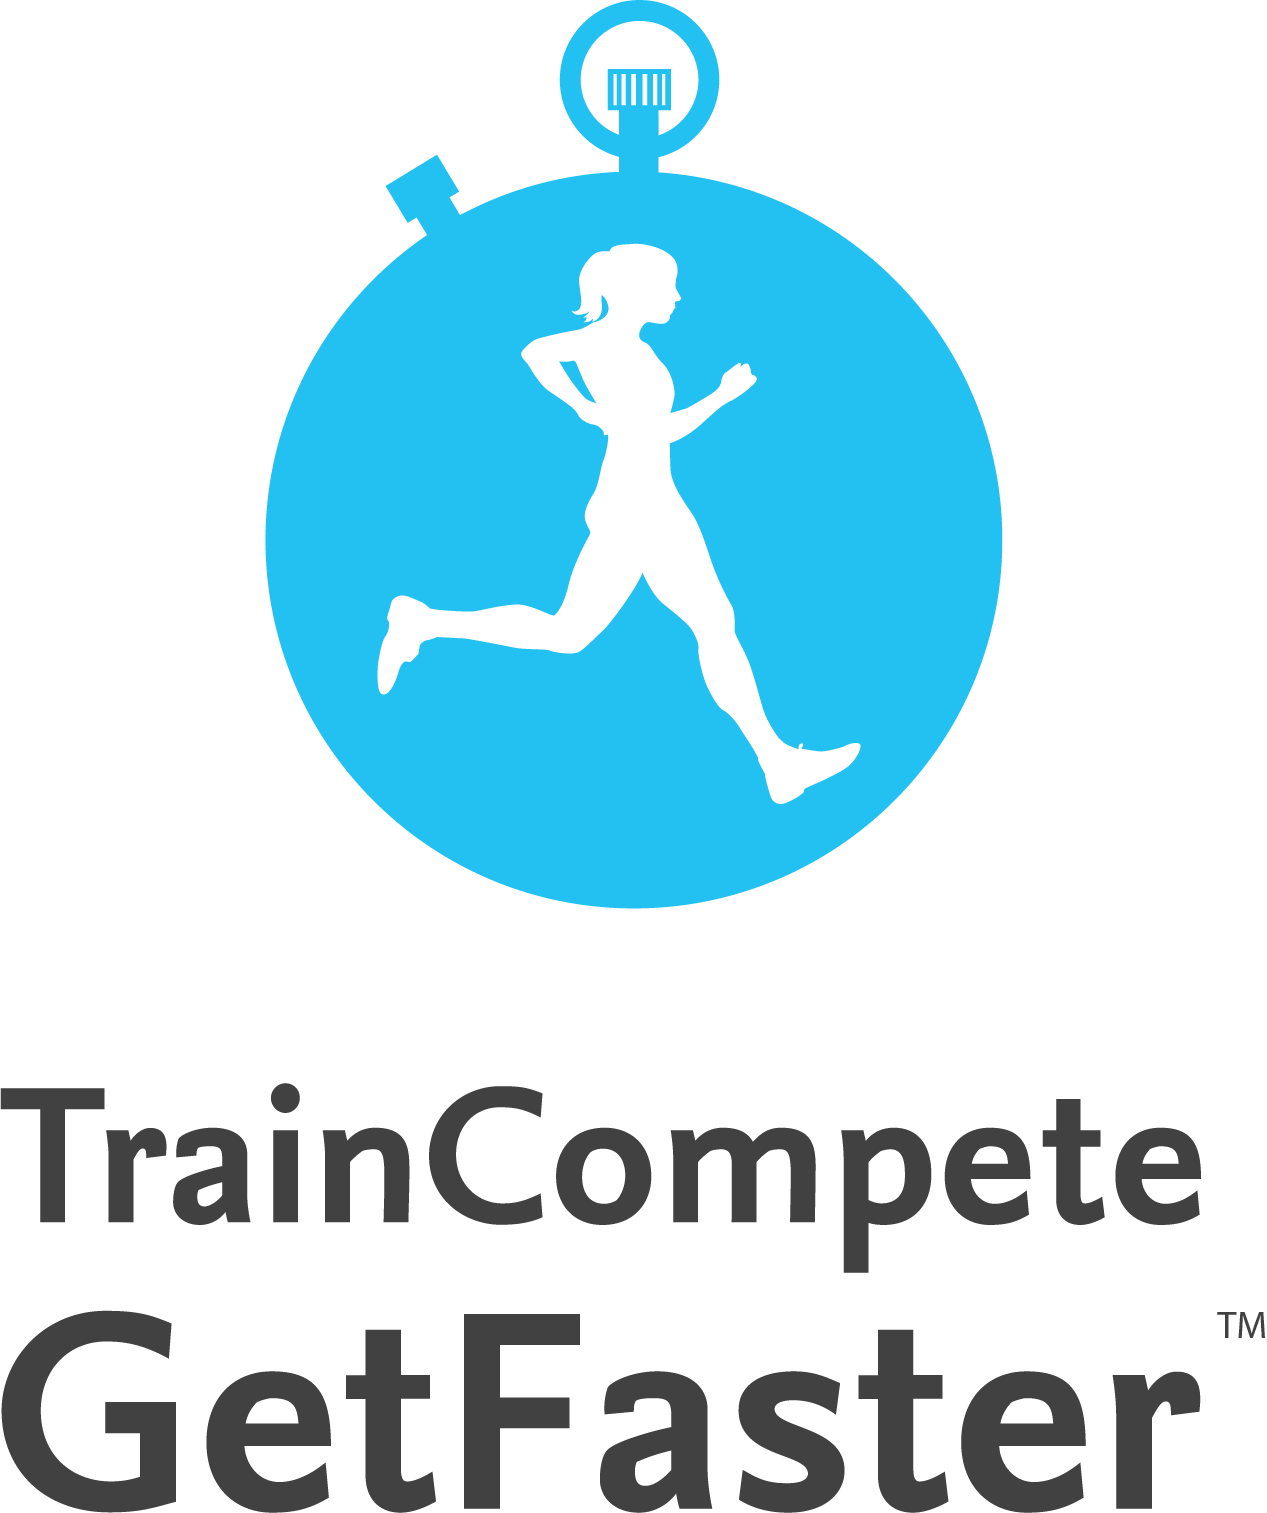 TrainCompeteGetFaster